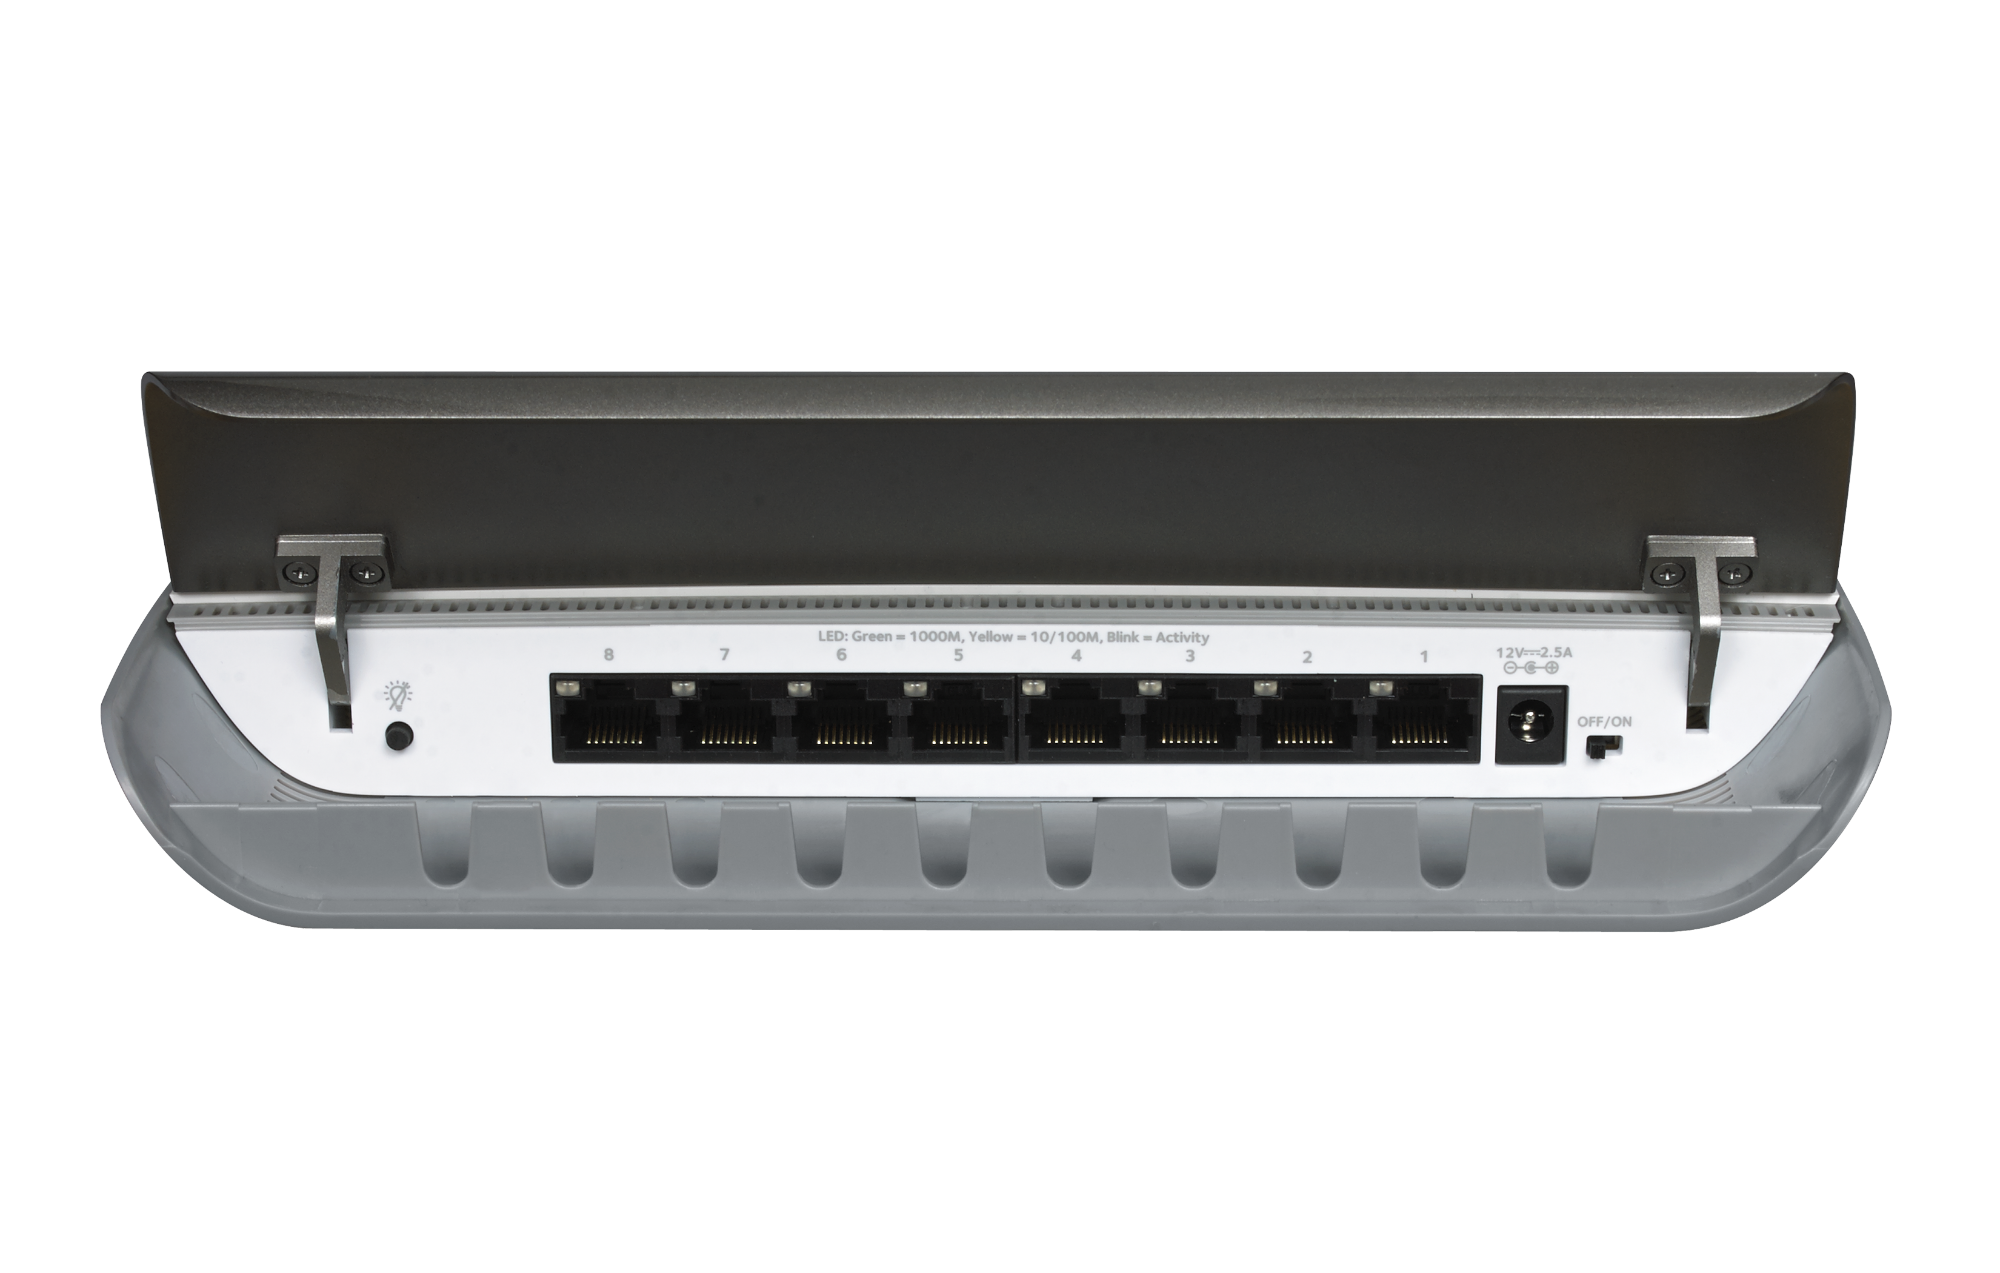 NETGEAR 8-port Gigabit Unmanaged Switch with Cable Management